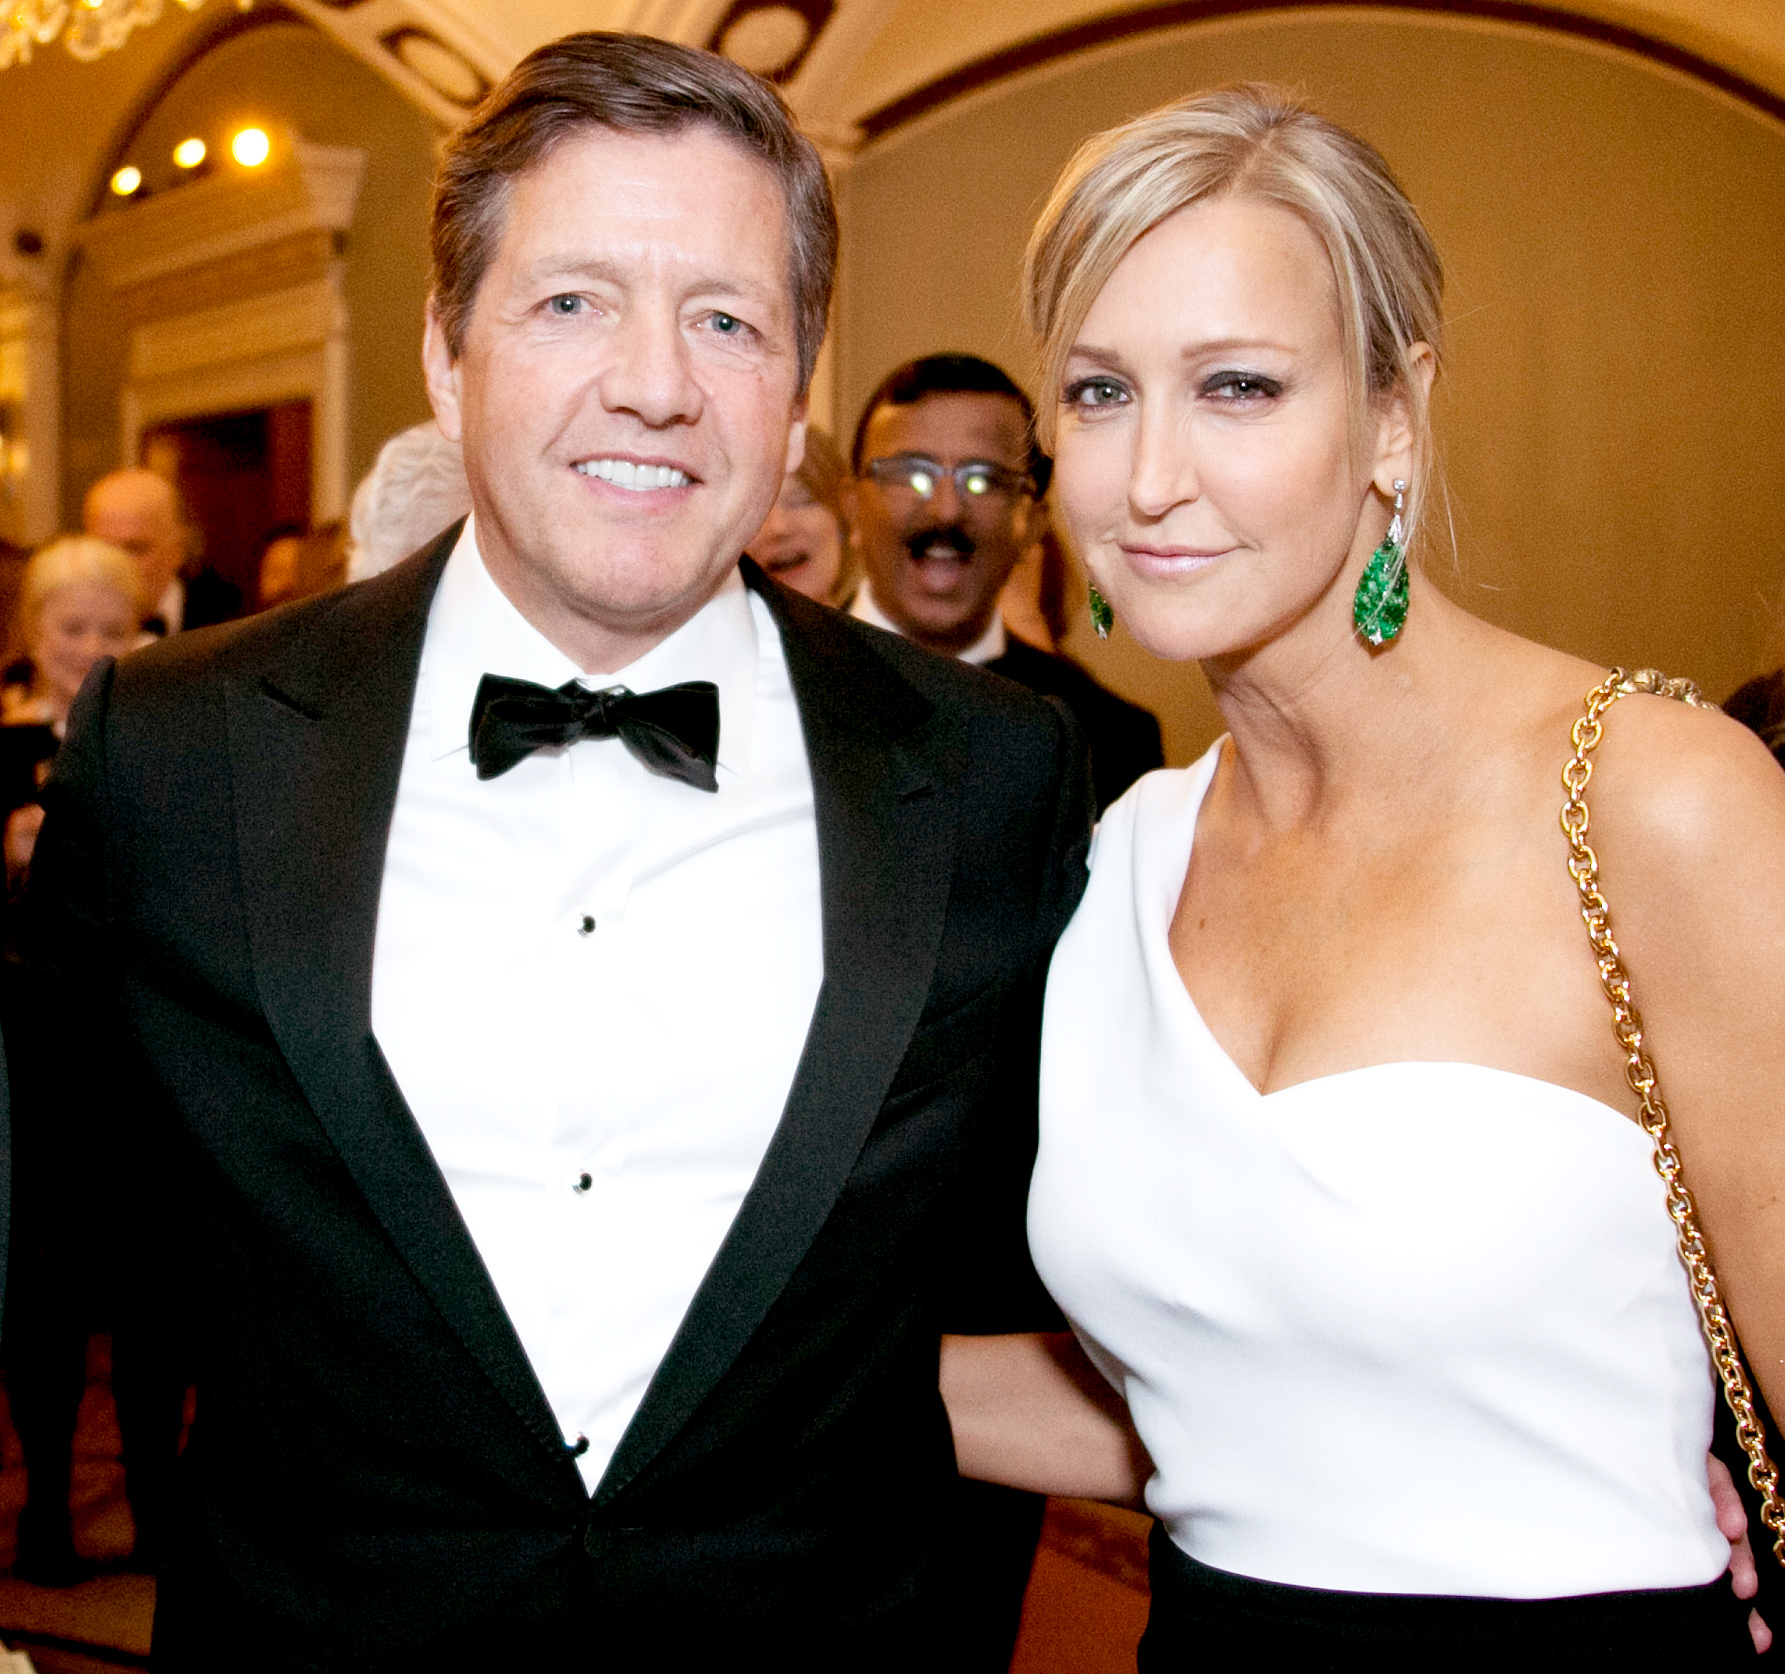 'Good Morning America' Host Lara Spencer is Engaged to Entrepreneur Rick McVey